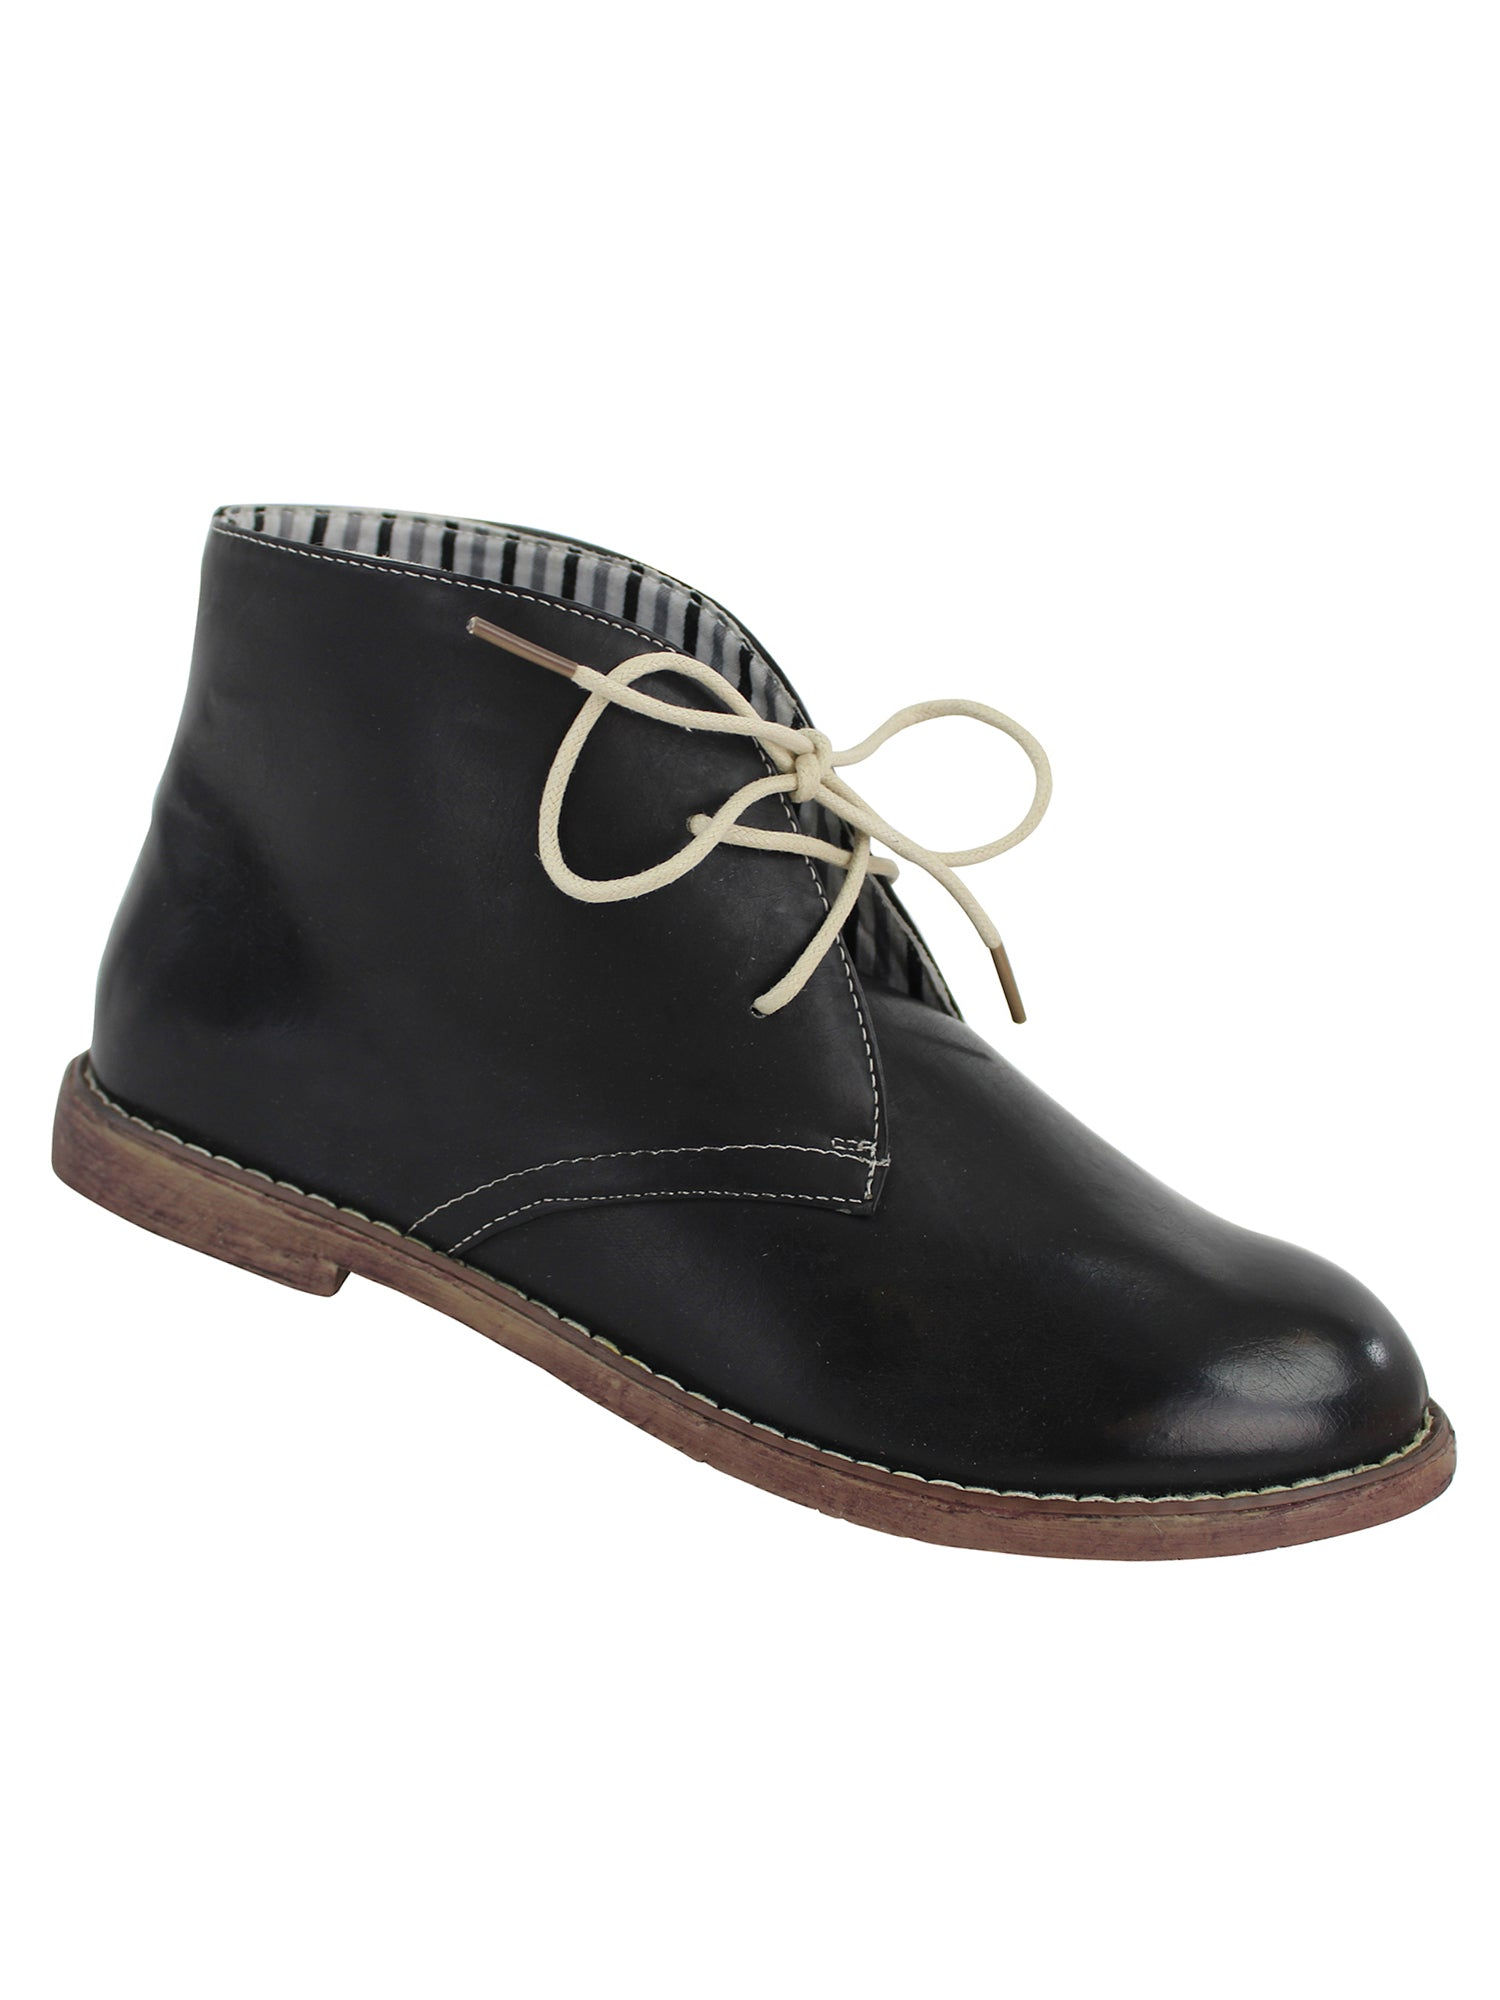 Black Lace-Up Womens Flat Ankle Boots